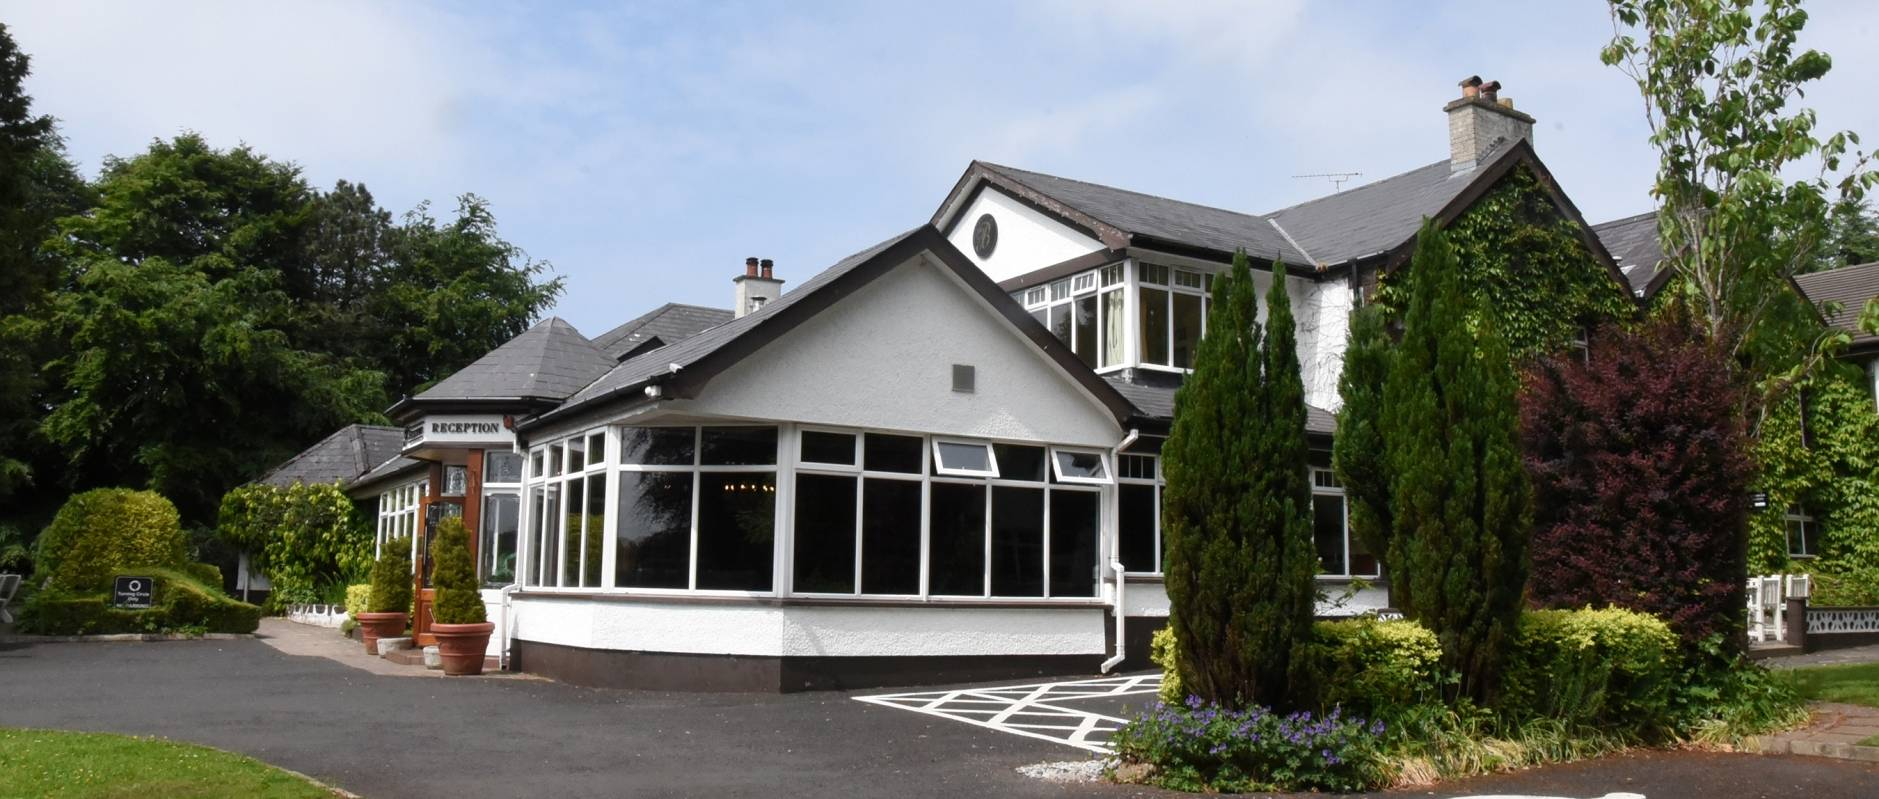 accommodation Bushtown Hotel Coleraine Londonderry